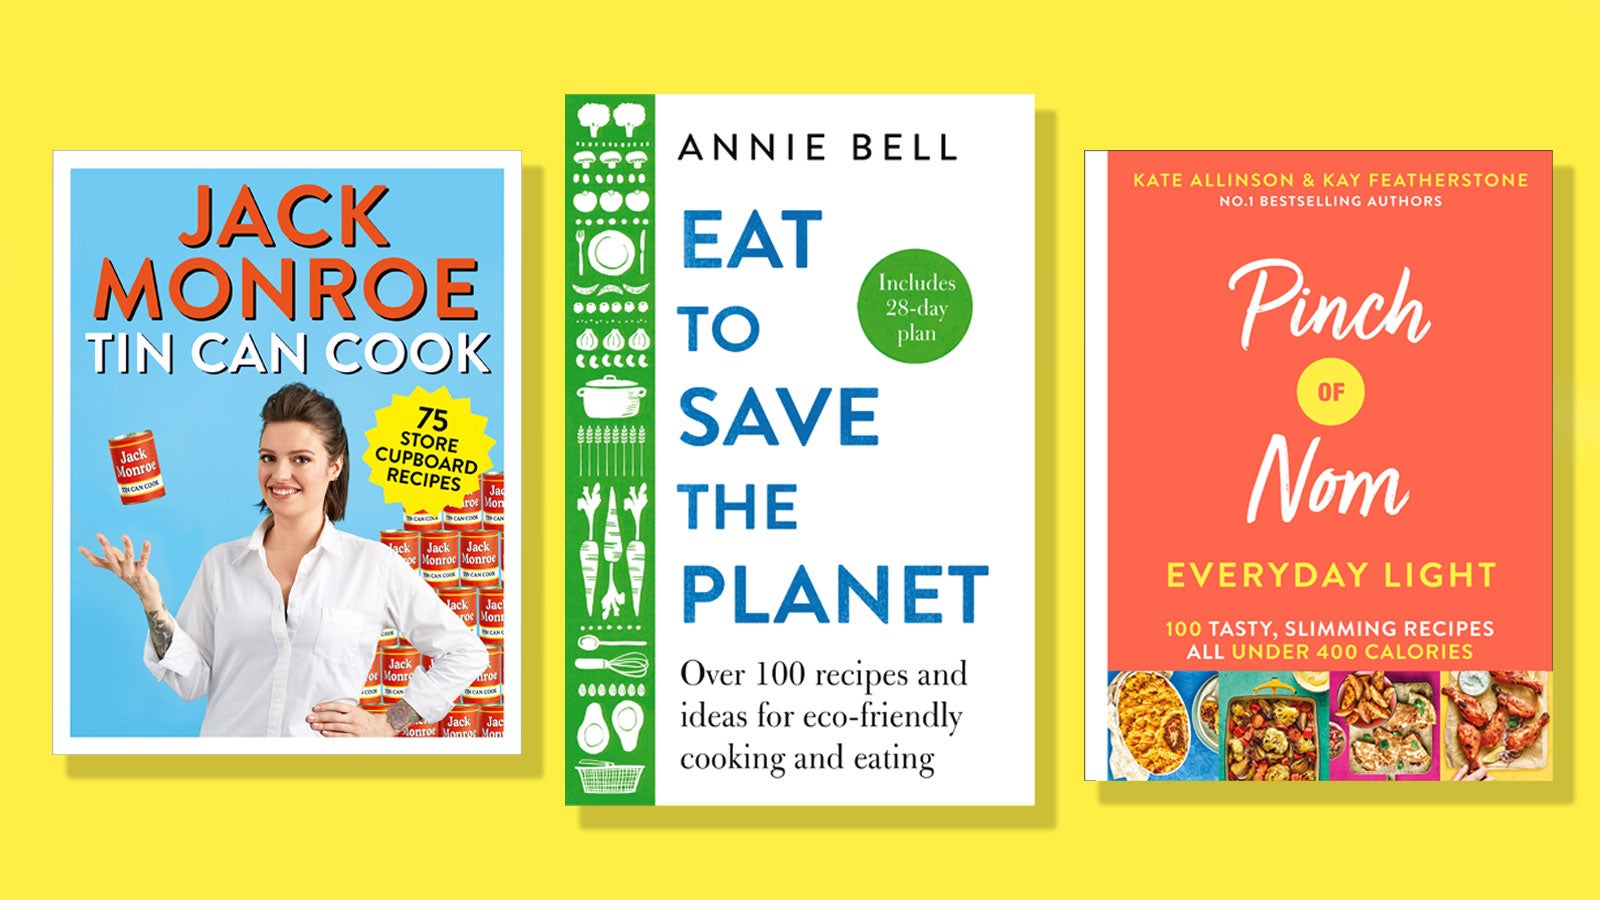 Tin Can Cook, Eat to Save the Planet and Pinch of Nom Everyday Light book covers